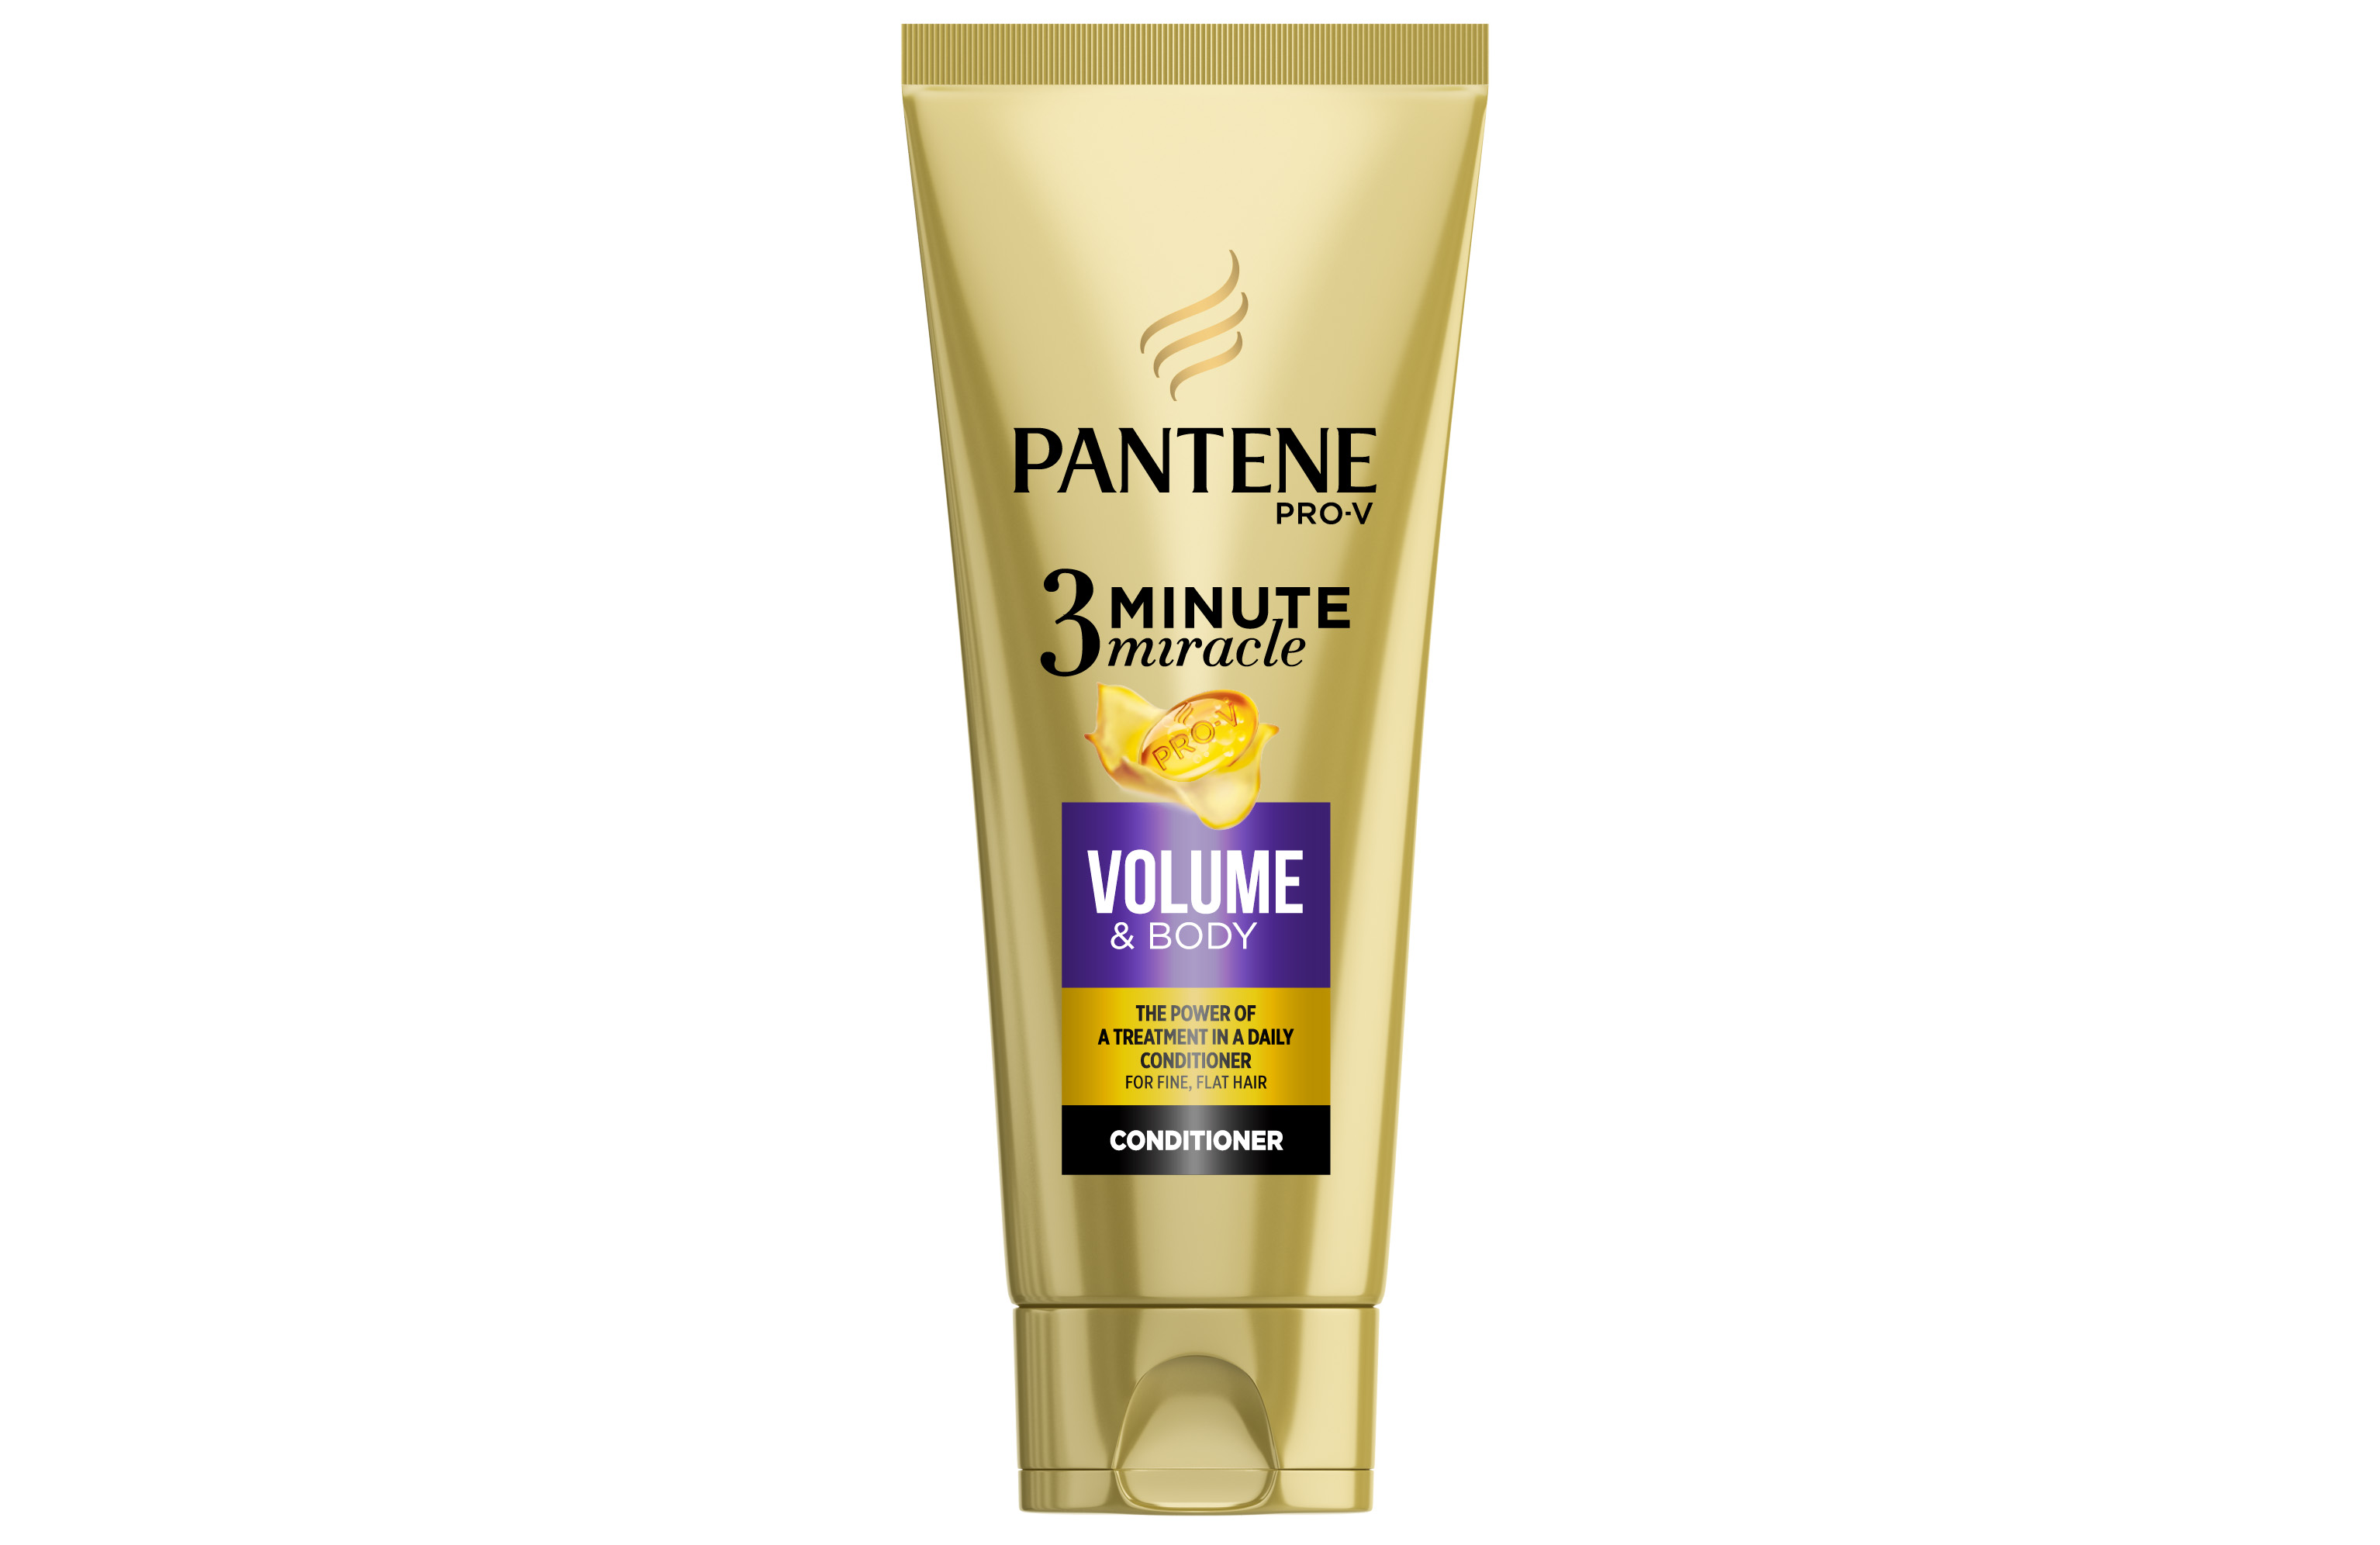 Pantene 3 Minute Miracle Volume & Body